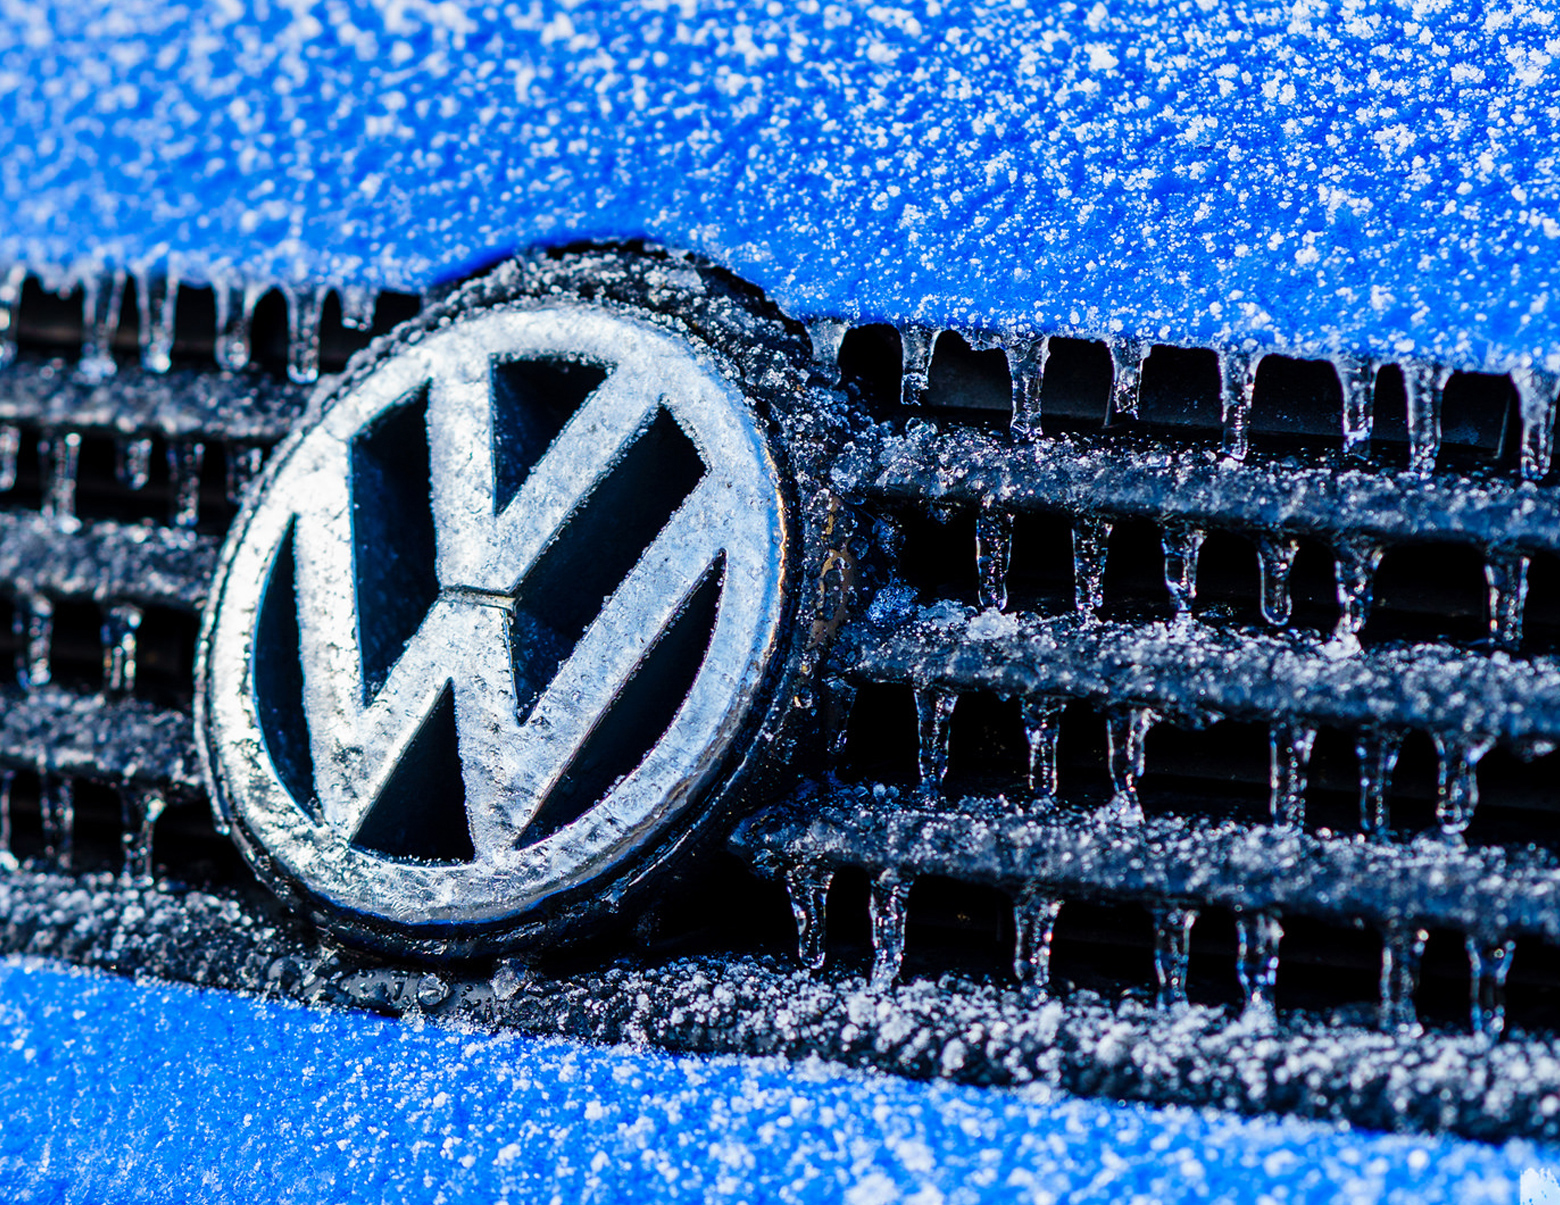 Volkswagen pleads guilty, will pay $4.3 billion to settle criminal ...